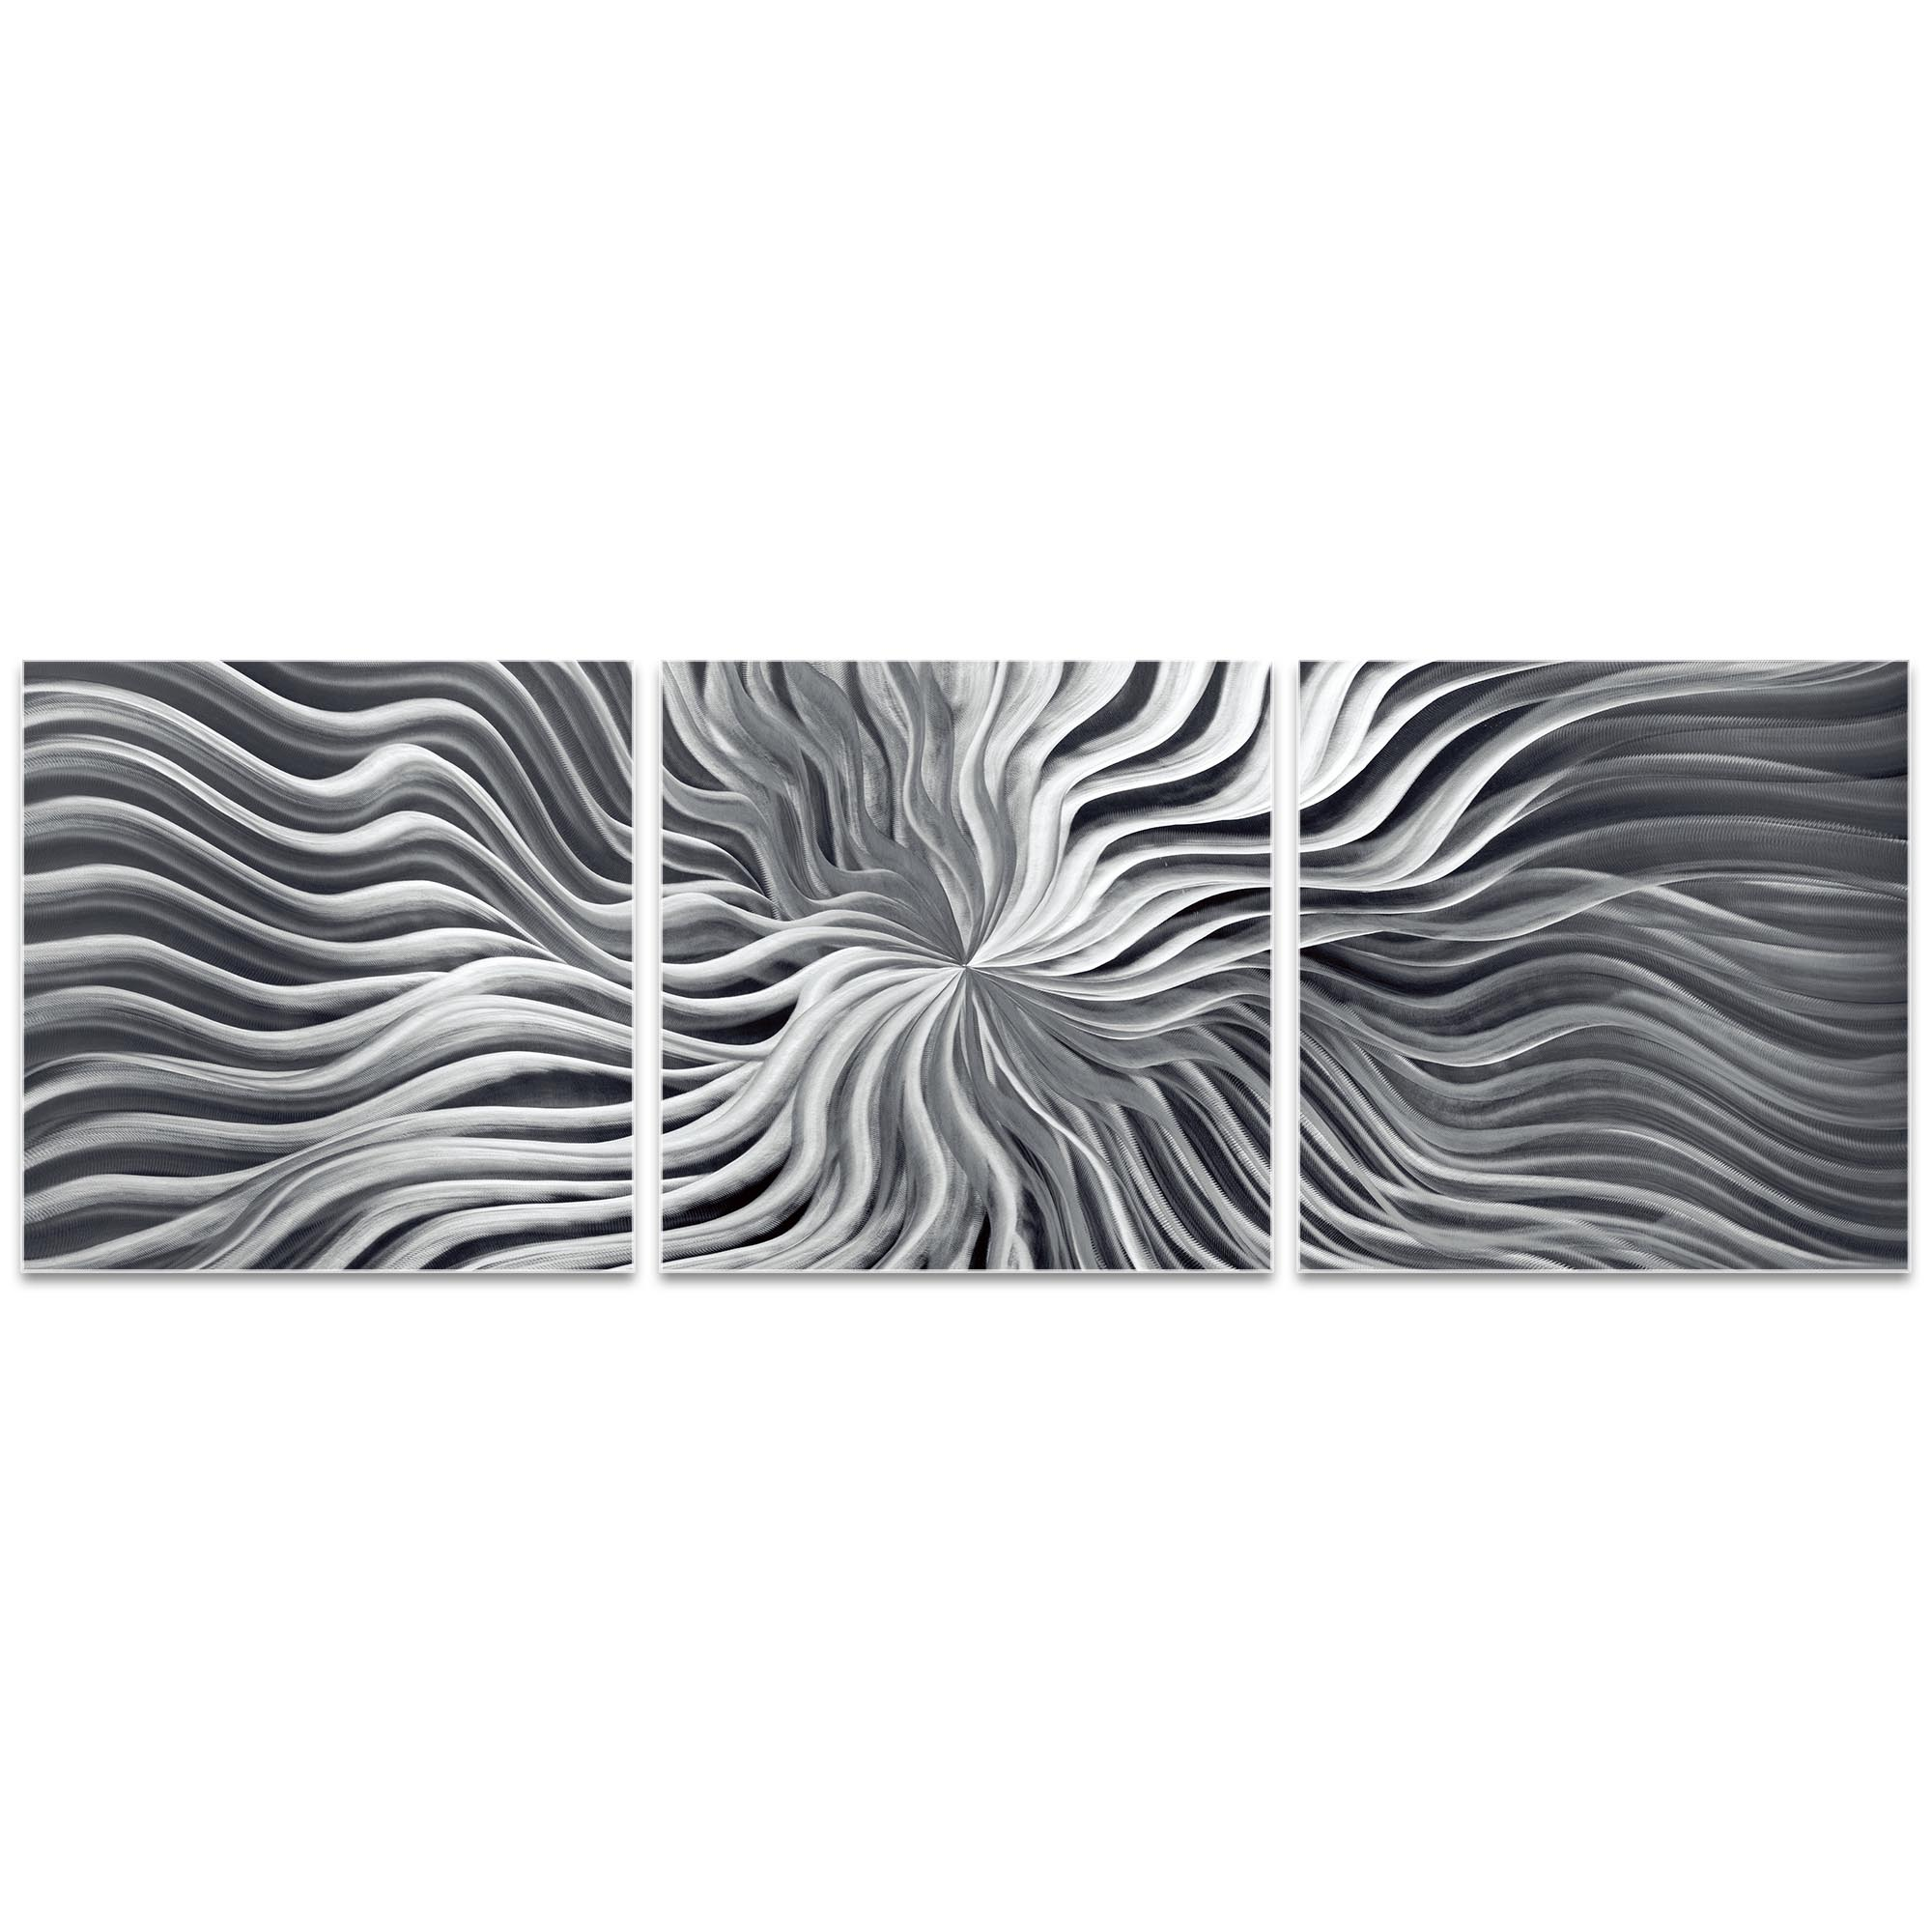 Flexure Triptych 38x12in. Metal or Acrylic Contemporary Decor - Image 2